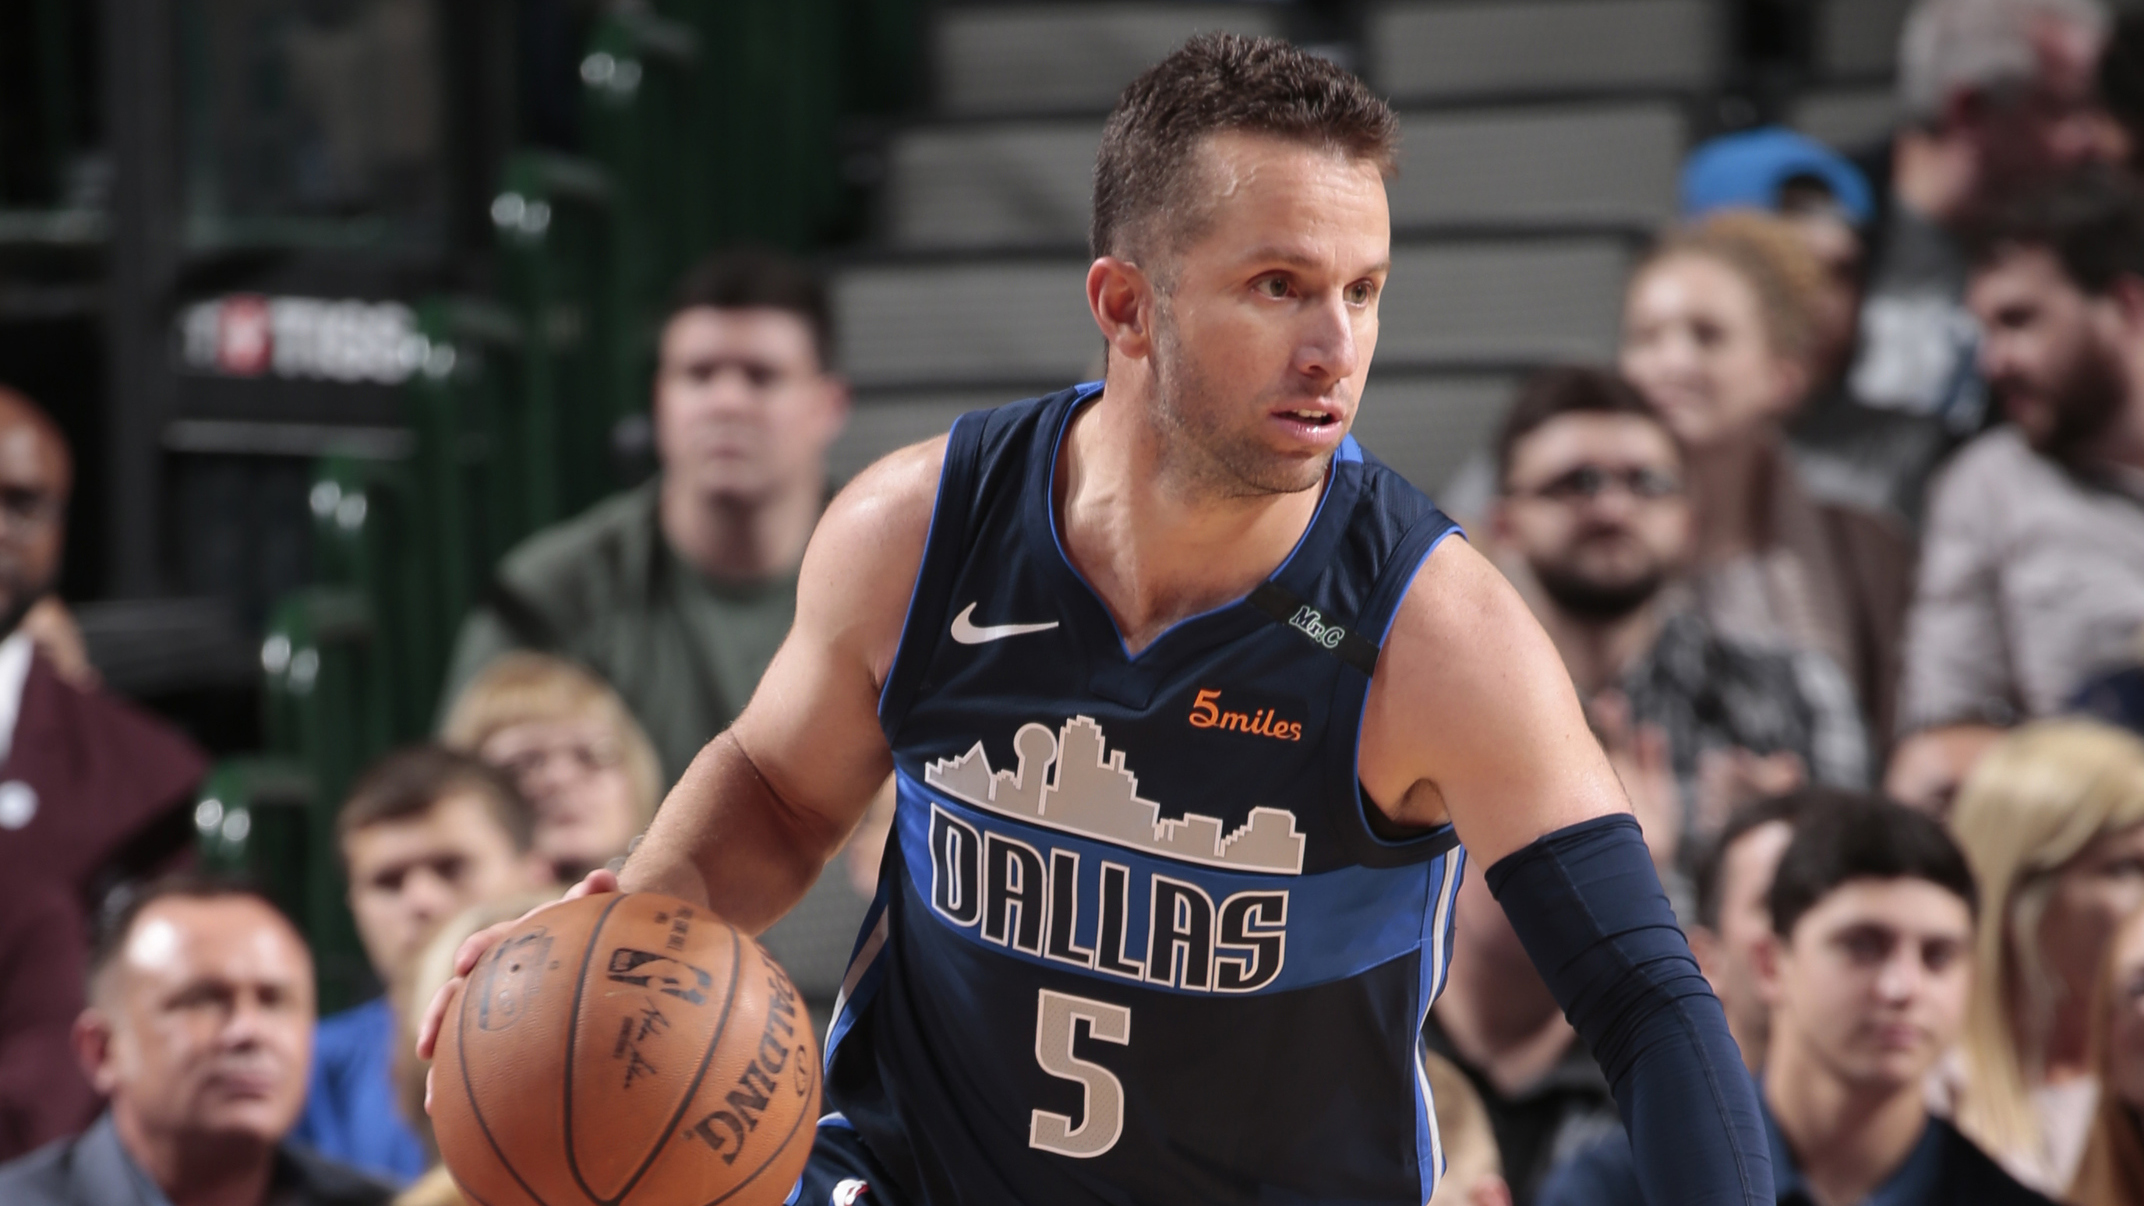 J.J. Barea says it's a 'tough day' after release from Mavericks